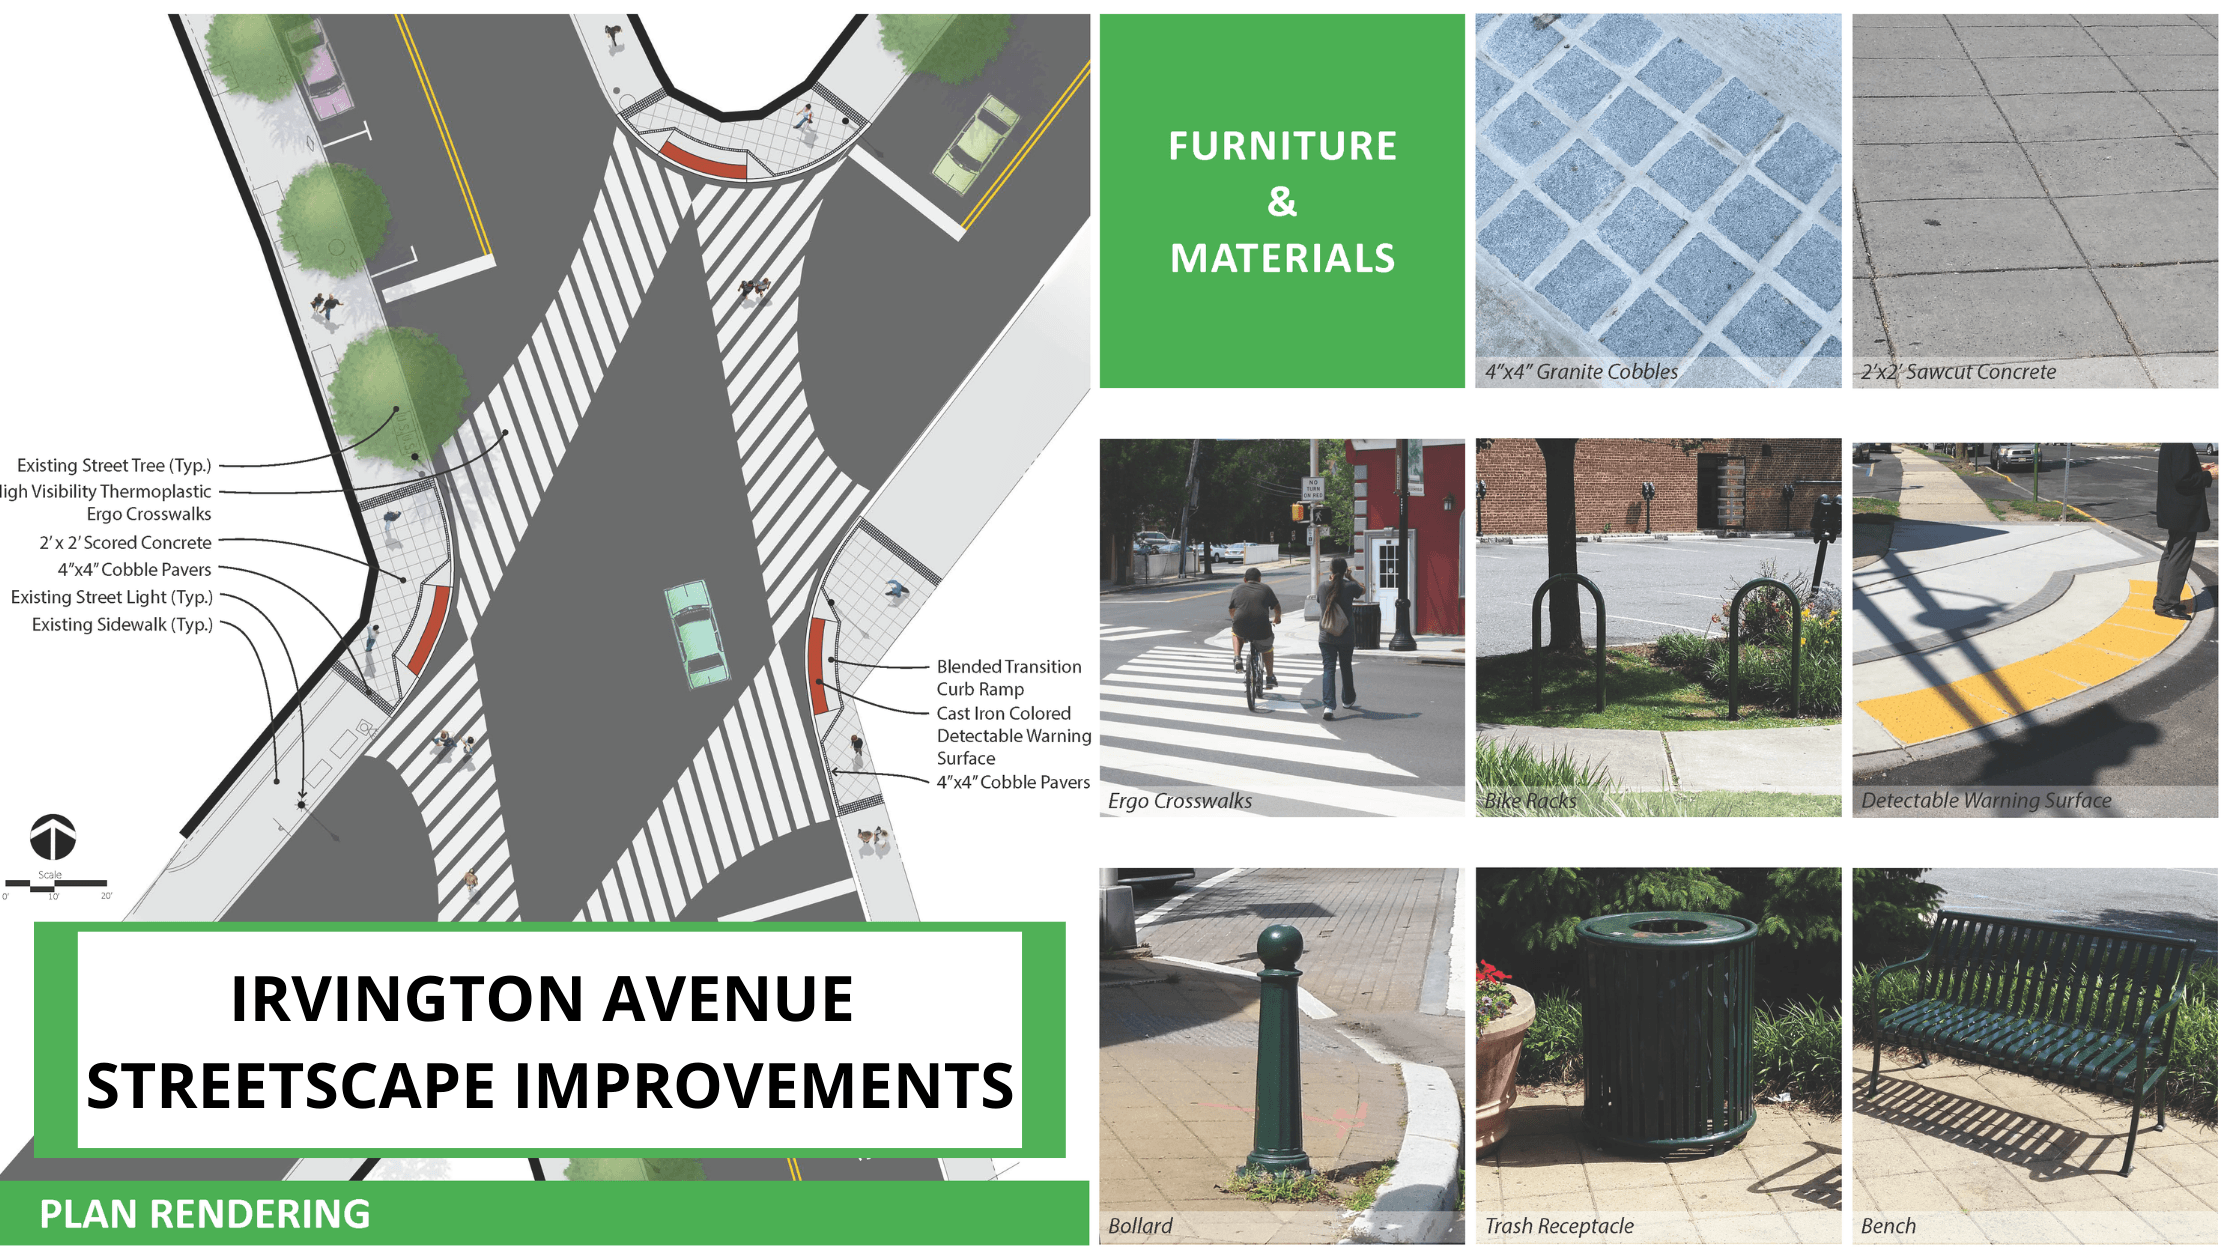 Irvington Avenue Streetscape Improvements